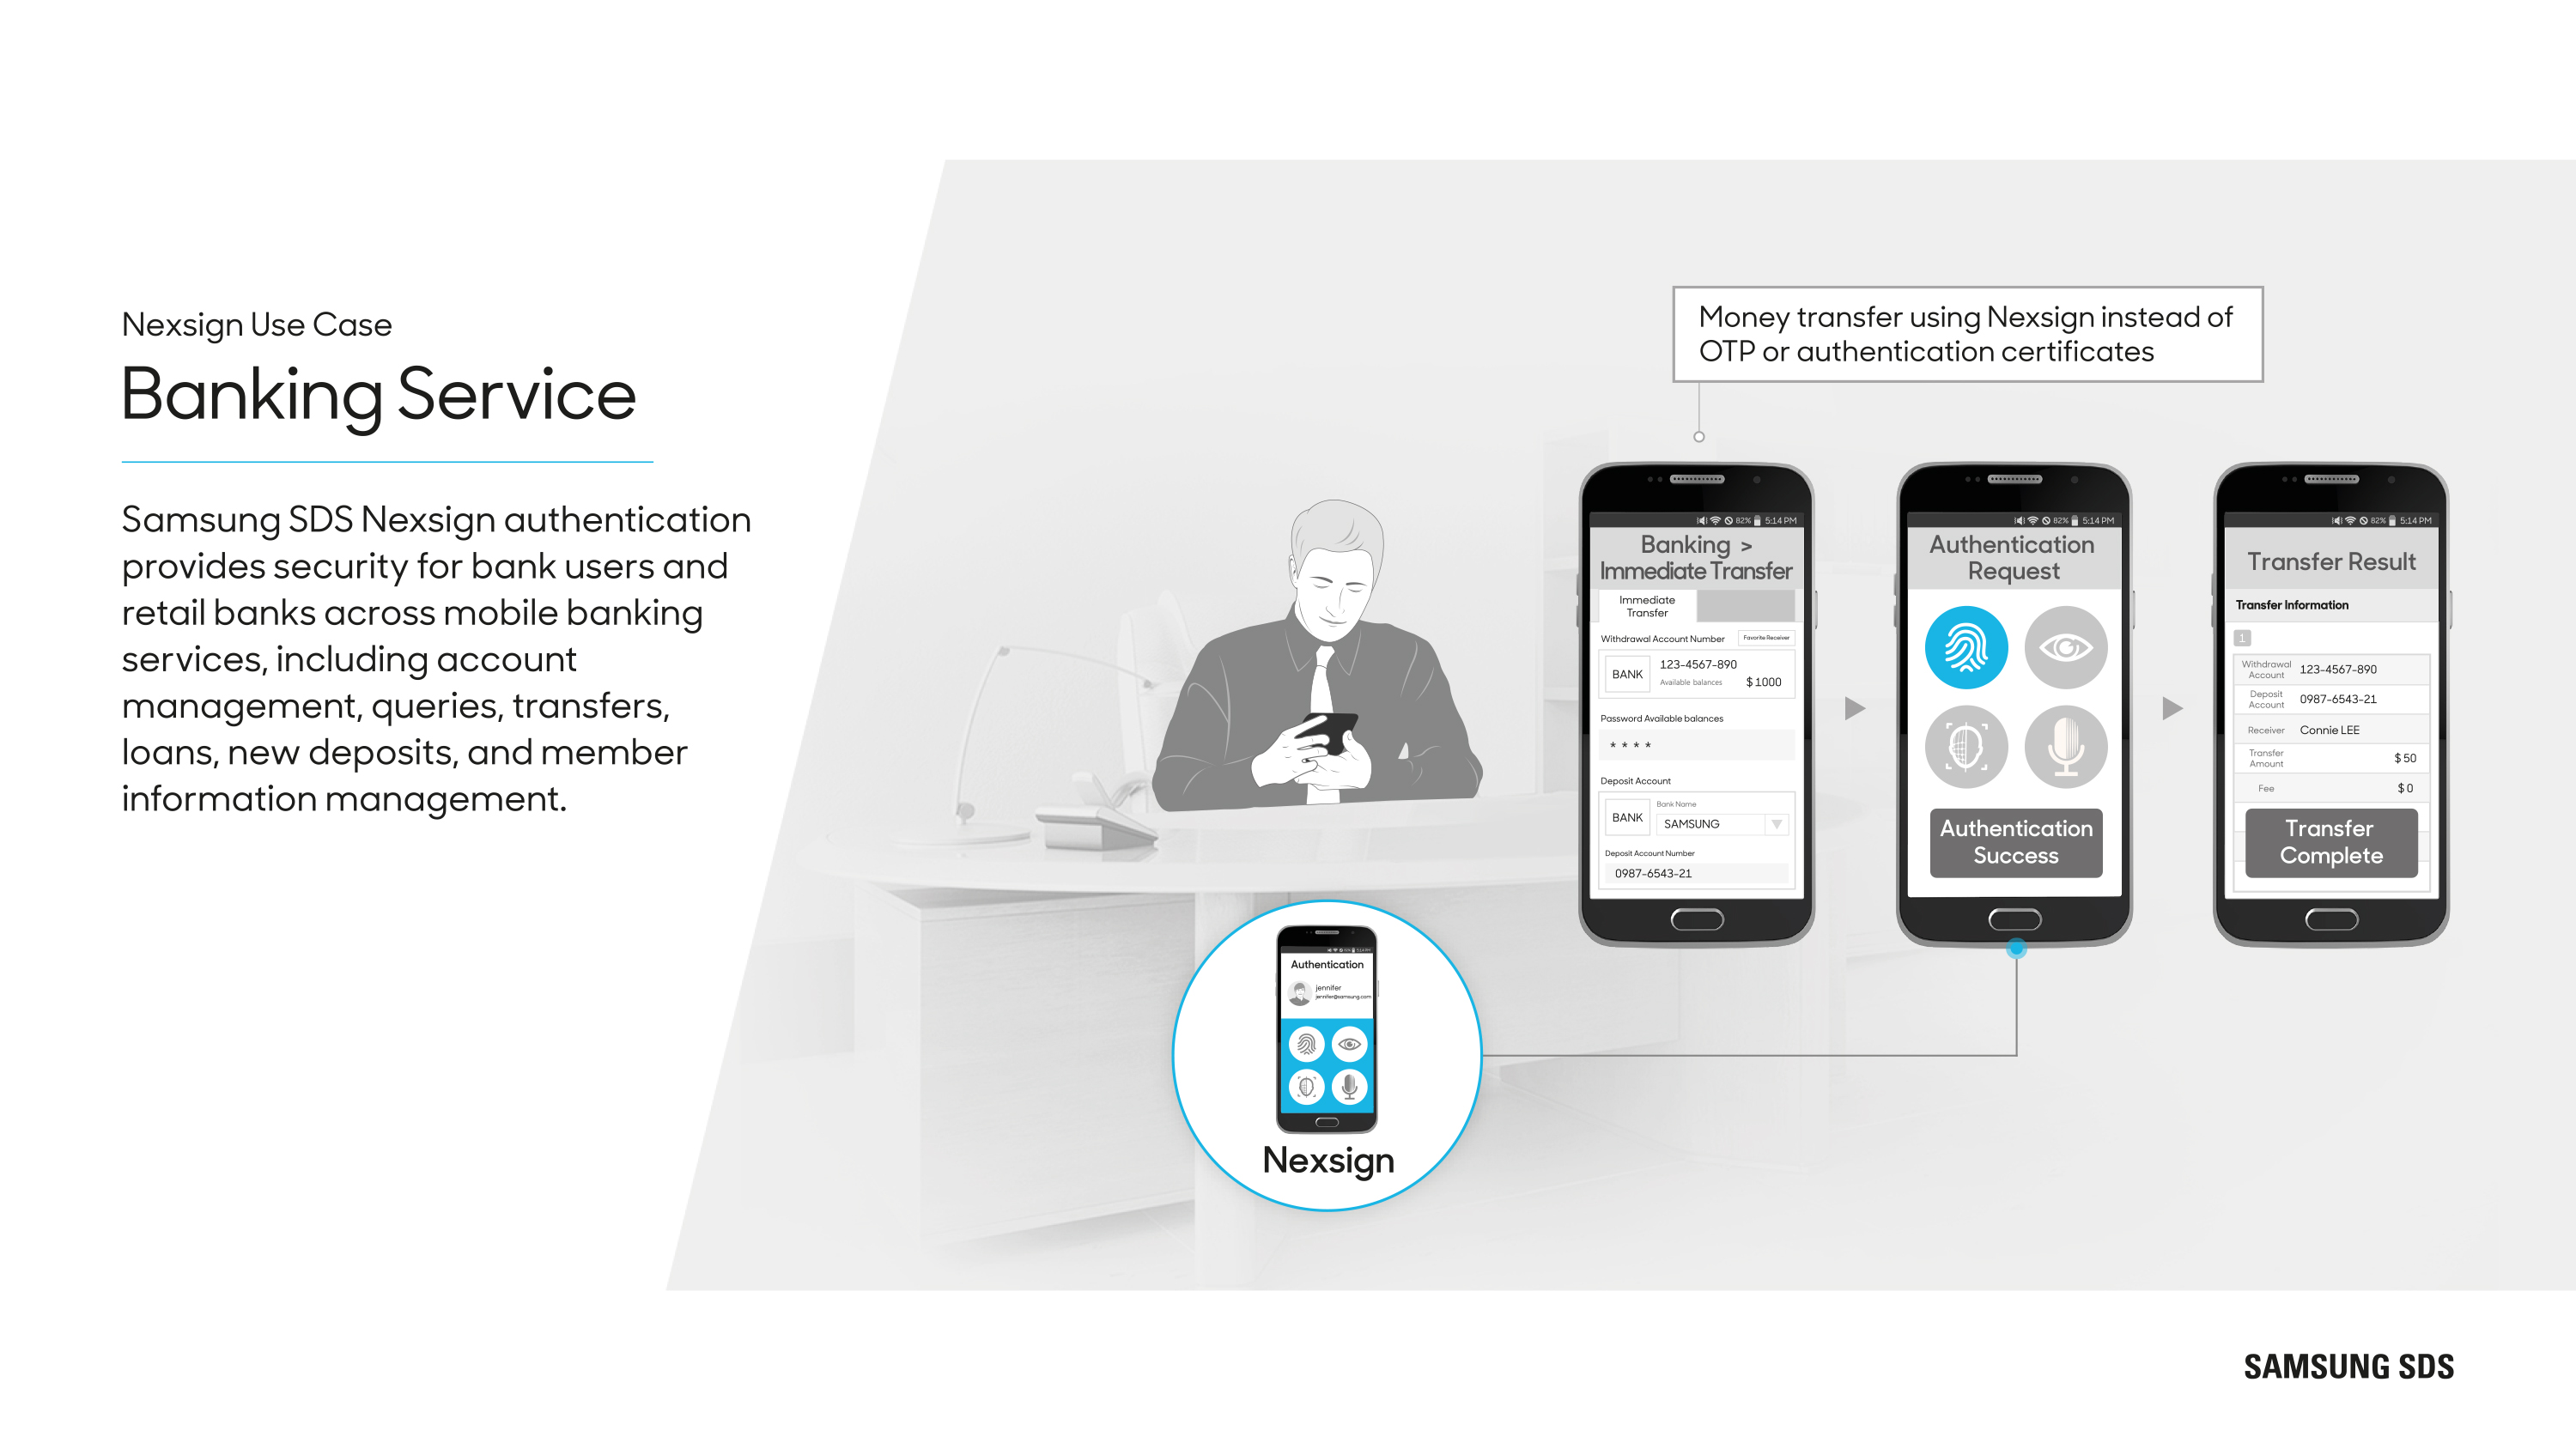 Banking Service Samsung SDS Nexsign authentication provides security for bank users and retail banks across mobile banking services, including account management, queries, transfers, loans, new deposits, and member information management.